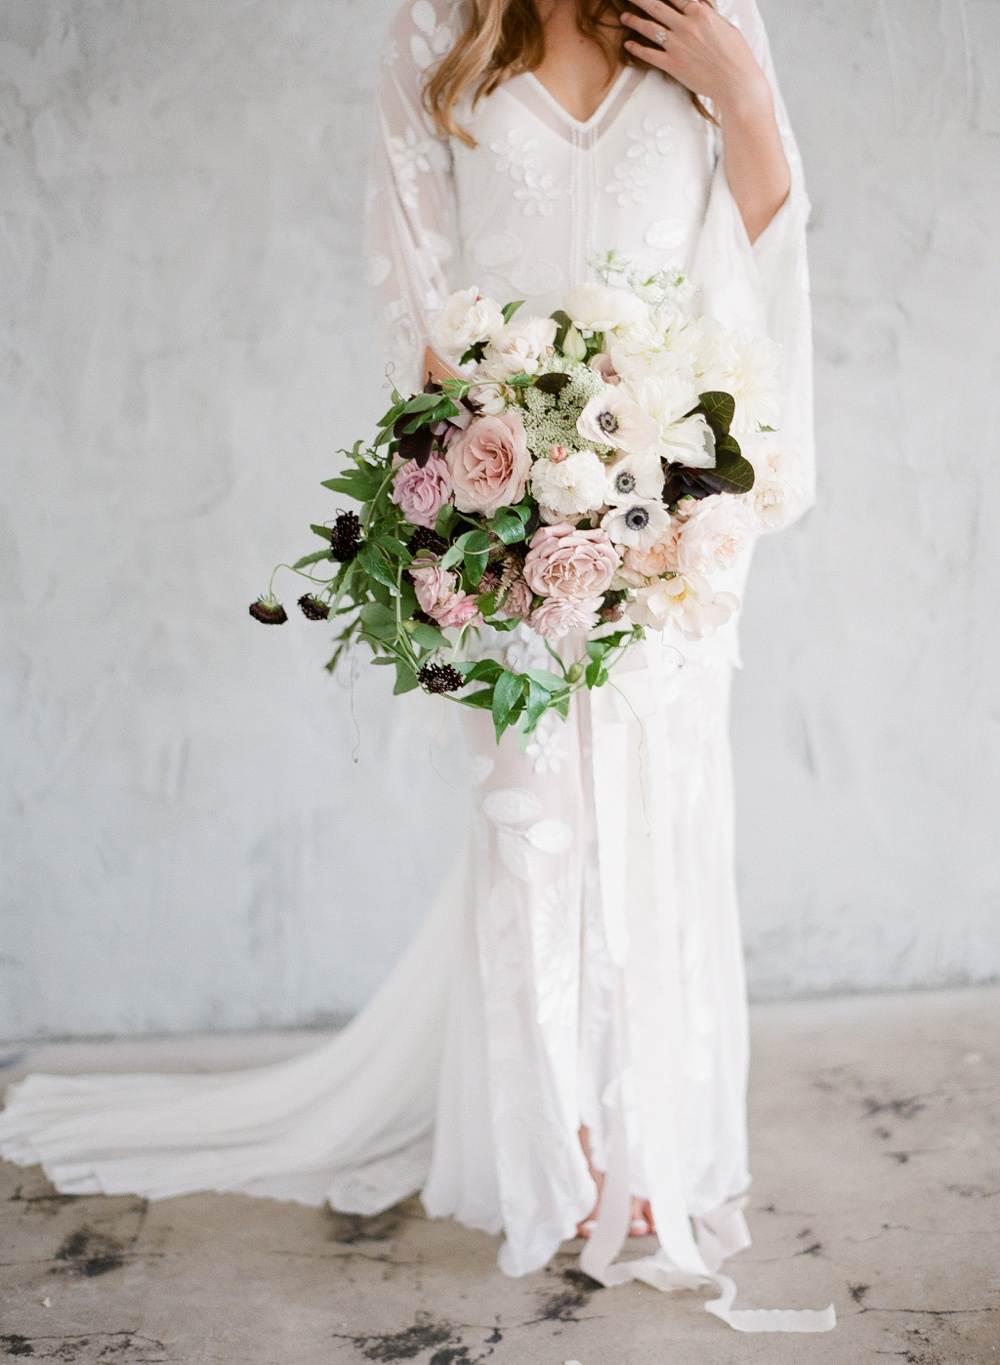 www.santabarbarawedding.com | Kristen Beinke | Jill & Co | Bridal Bouquet